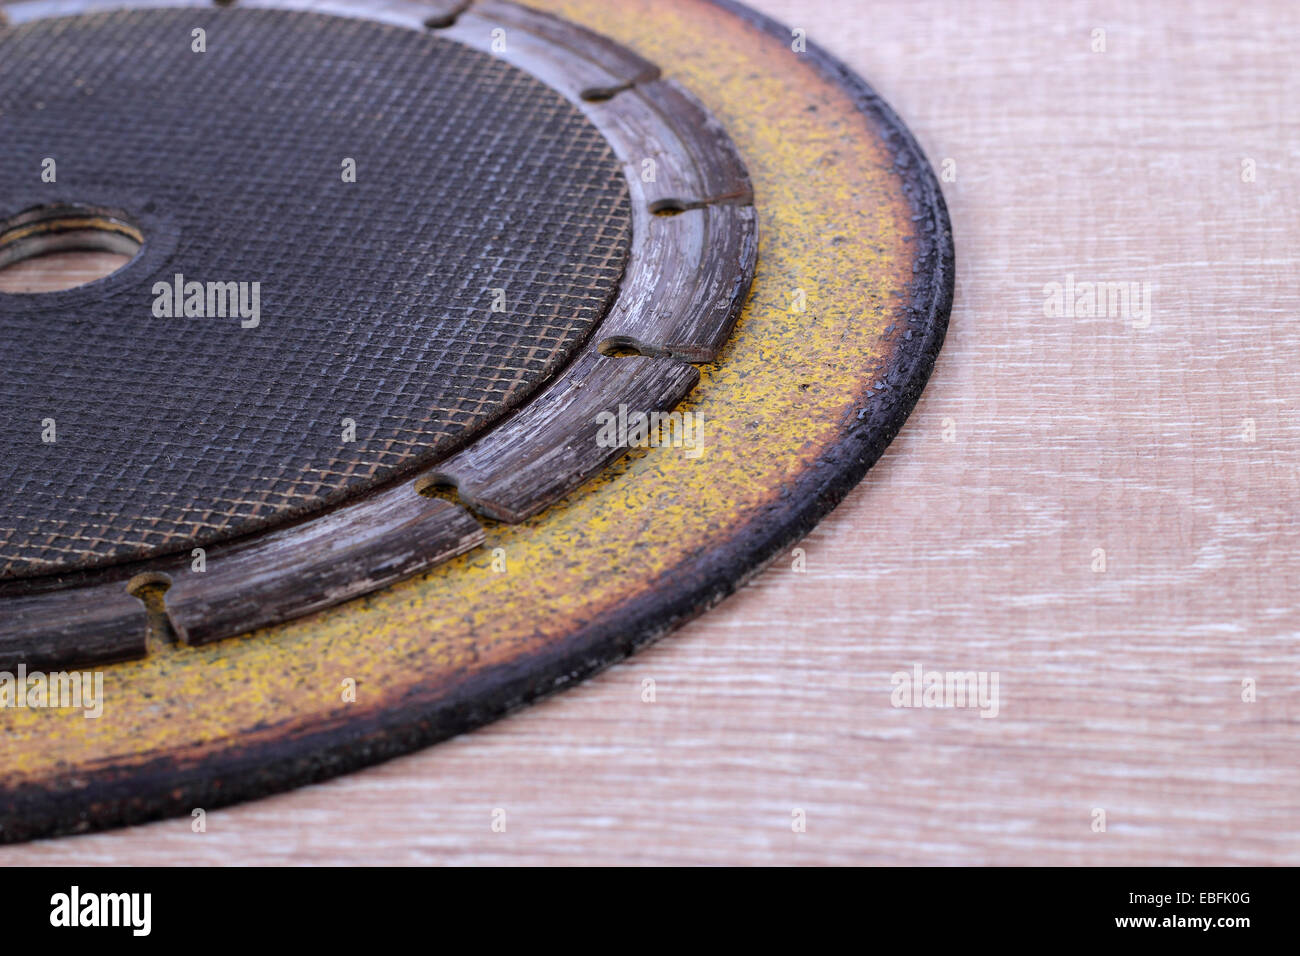 Some disks different diameter for the Angle Grinder. - Stock Image